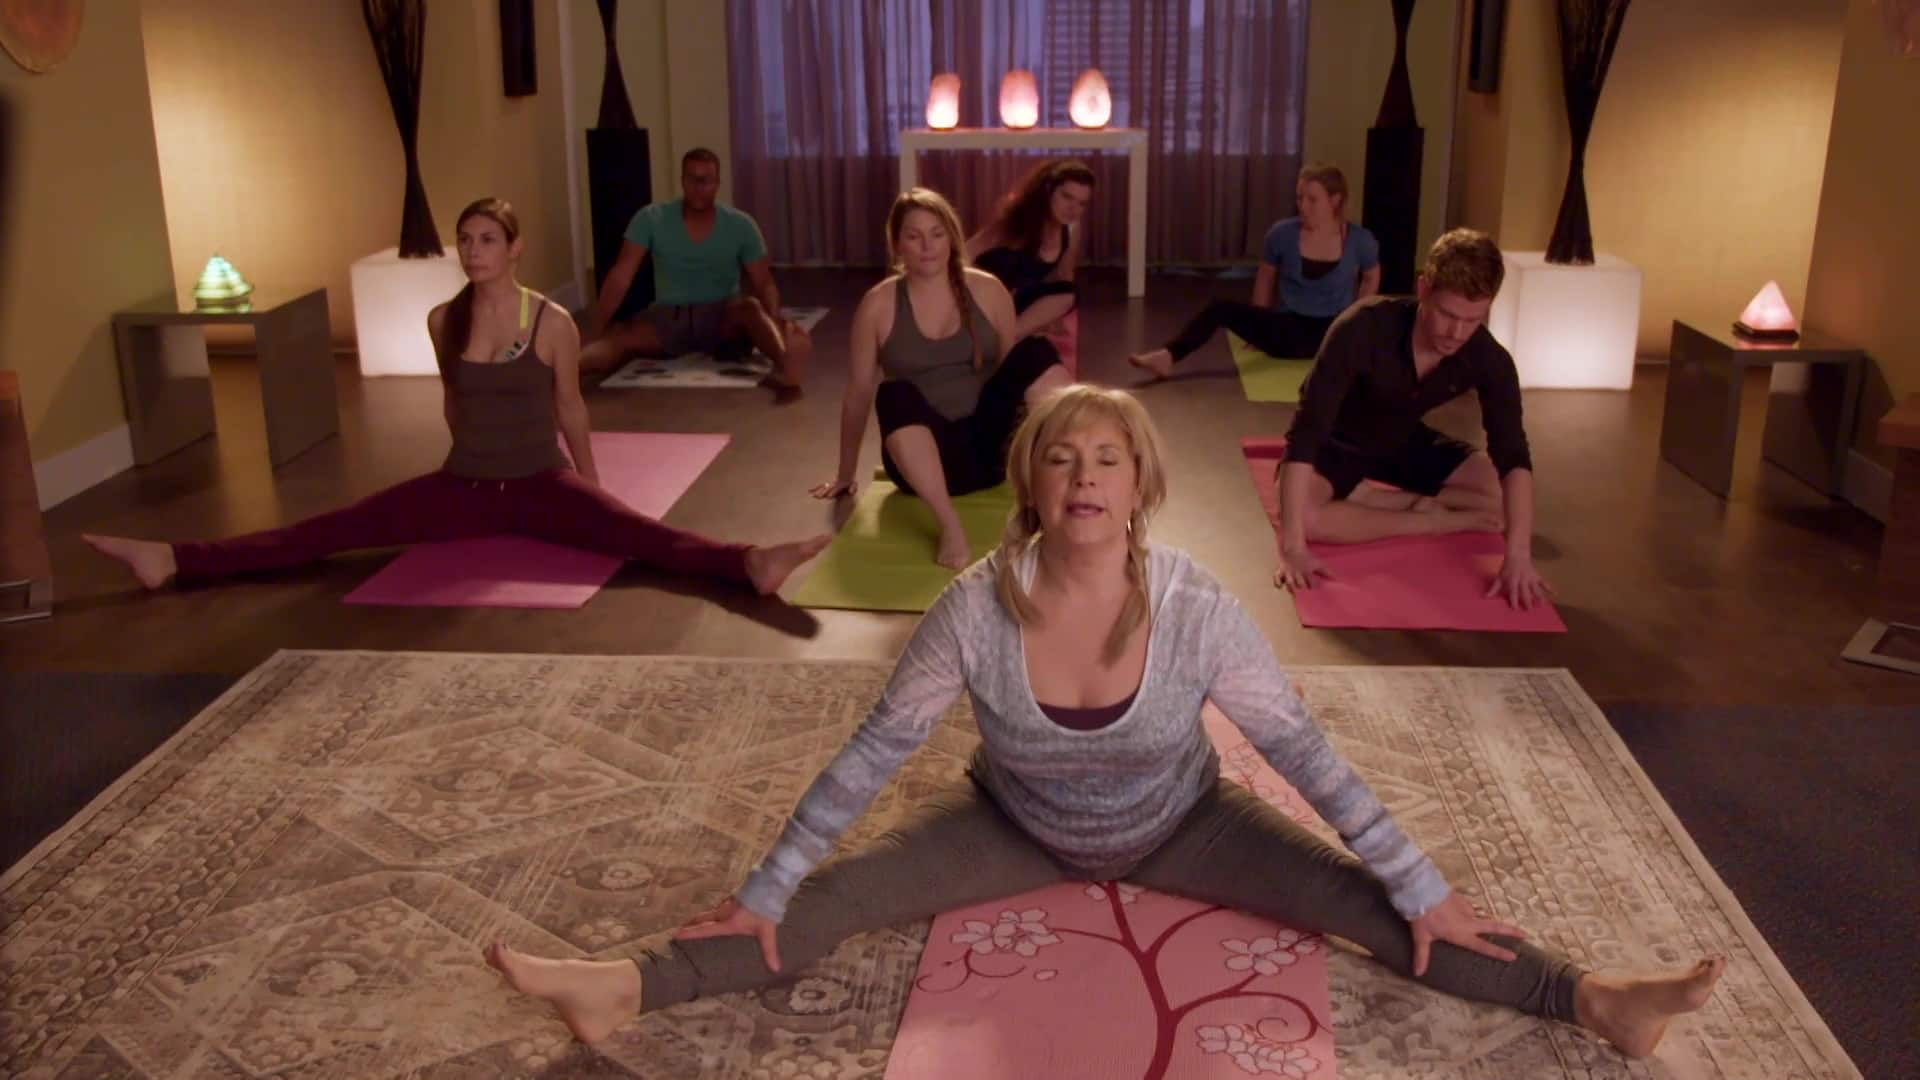 Angry Yoga: Men and Facebook